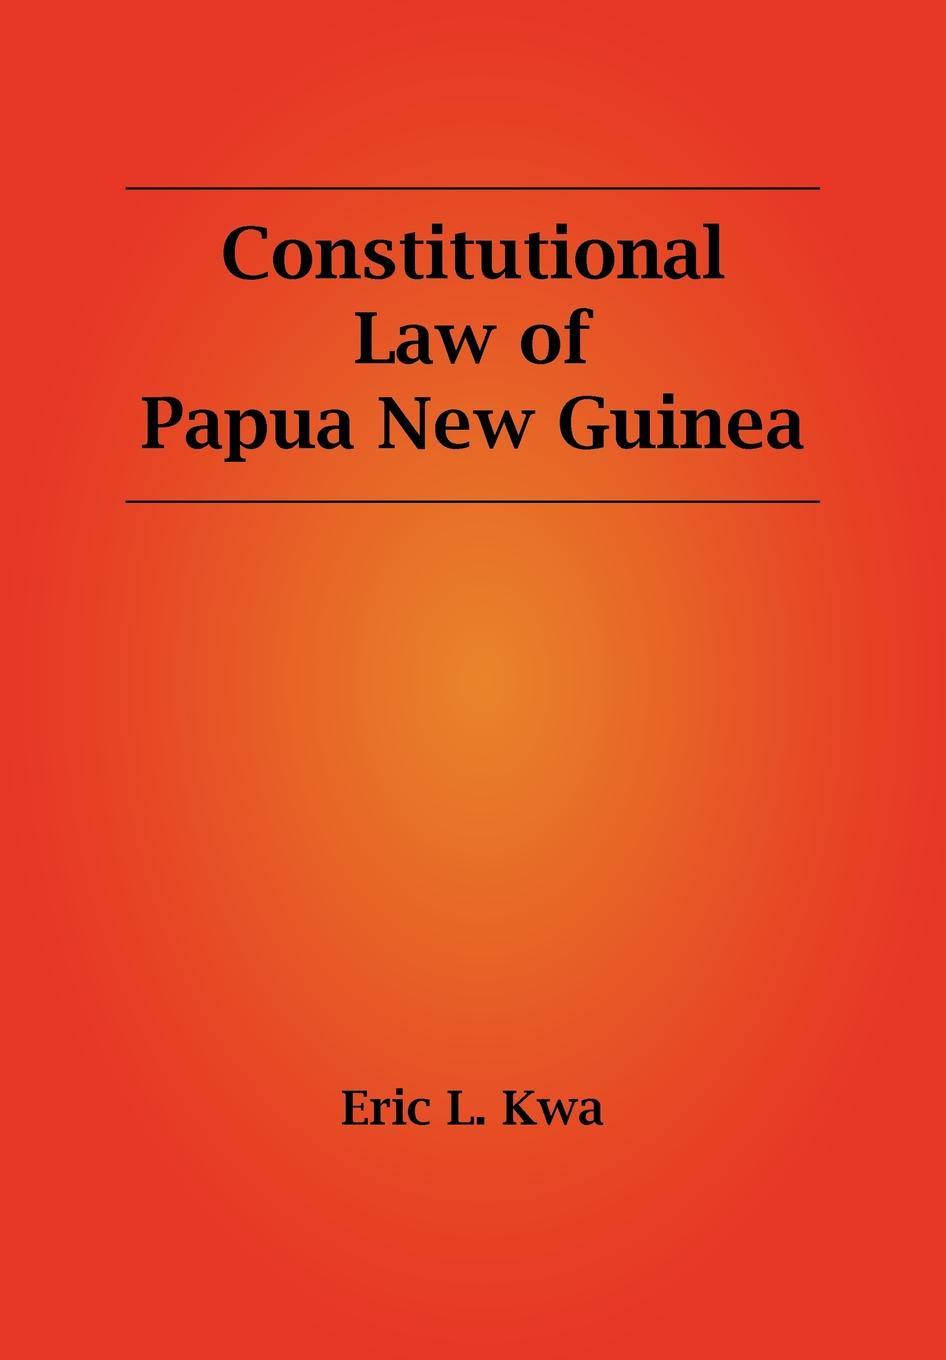 Eric L. Kwa Constitutional Law of Papua New Guinea